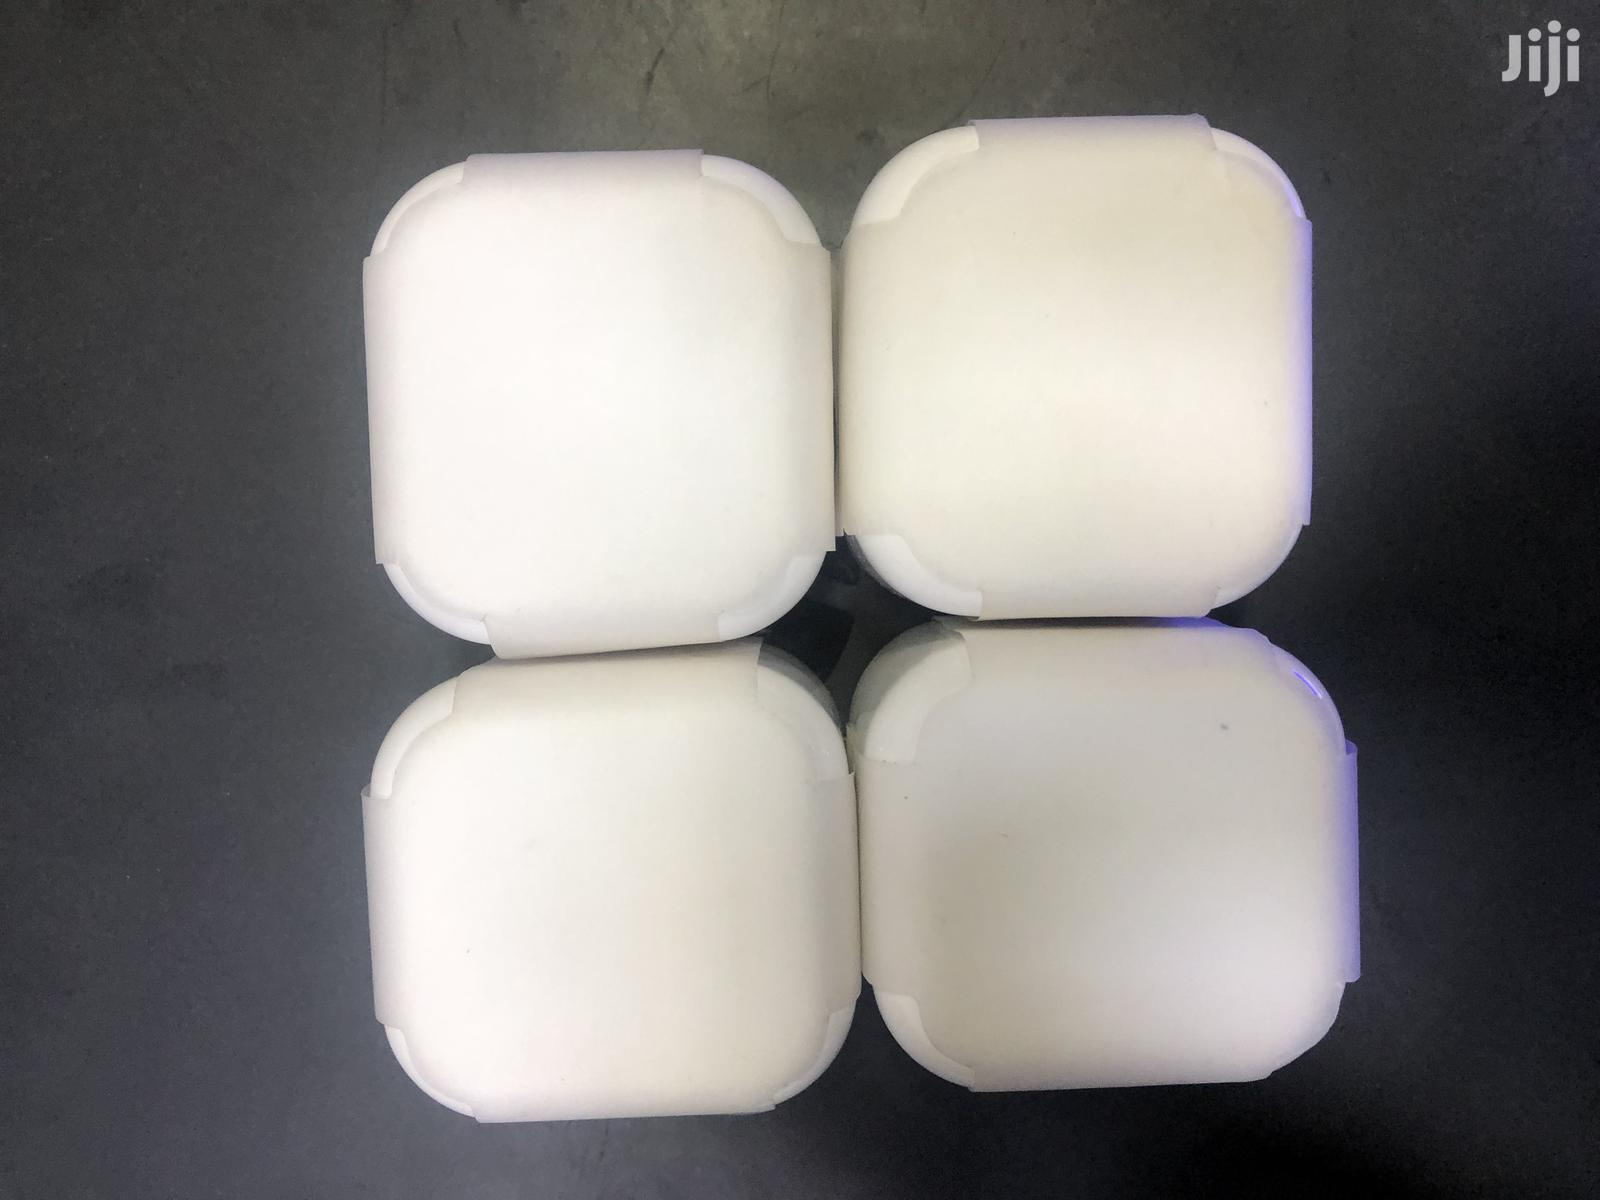 iPhone 11,11 Pro & 11 Pro Max ORIGINAL CHARGERS